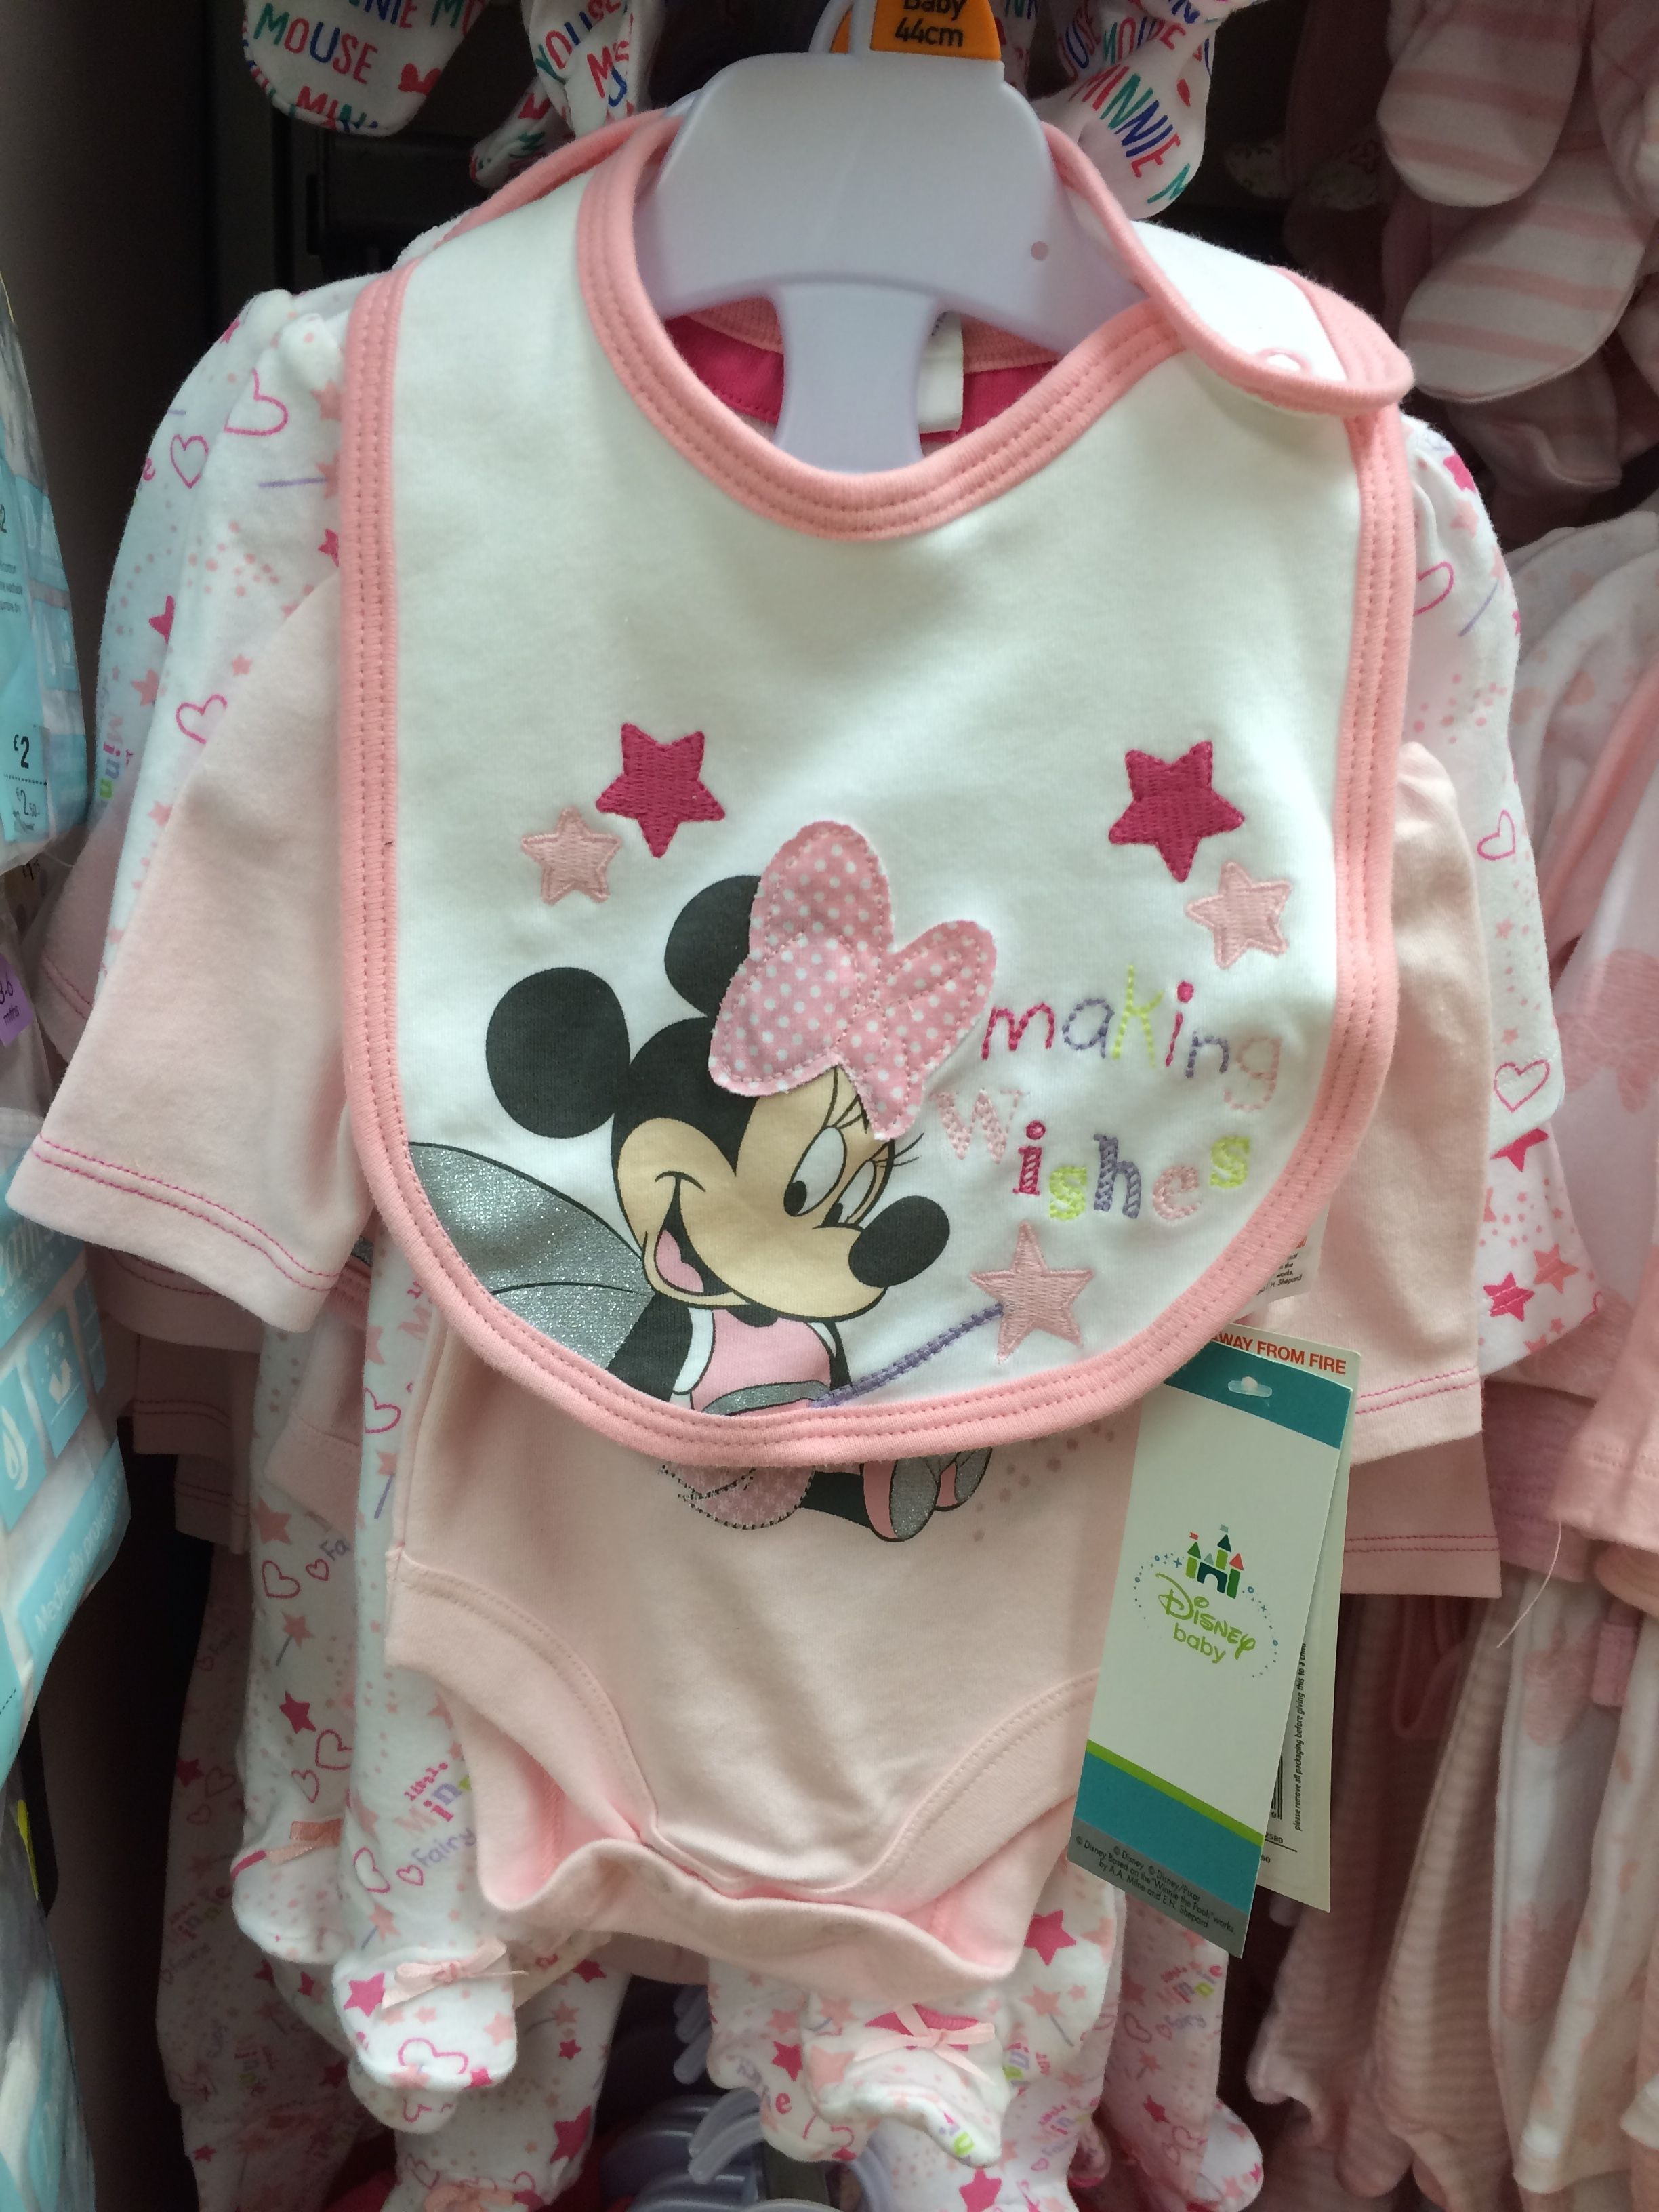 Tesco Baby Ss16 Baby Girl Clothes Baby Girl Outfits